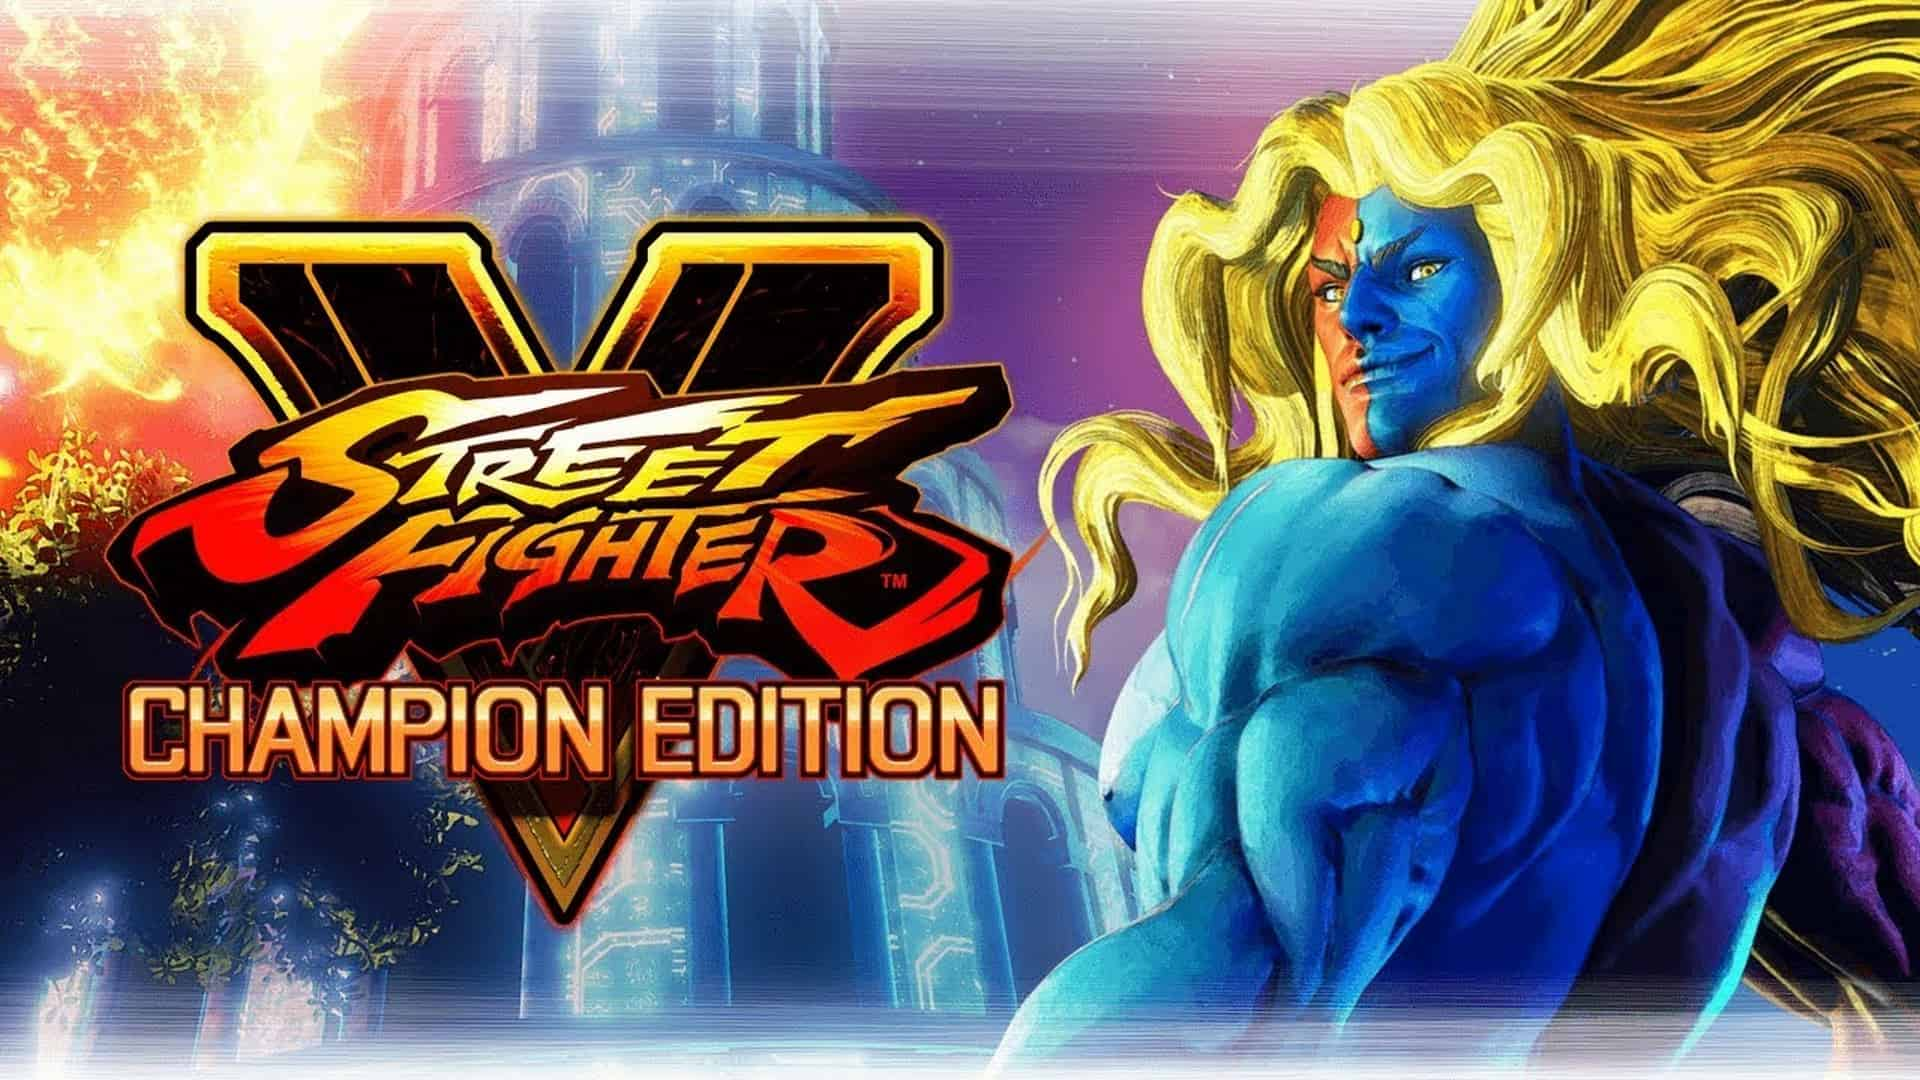 Street Fighter V Champion Edition Announced For February 14 2020